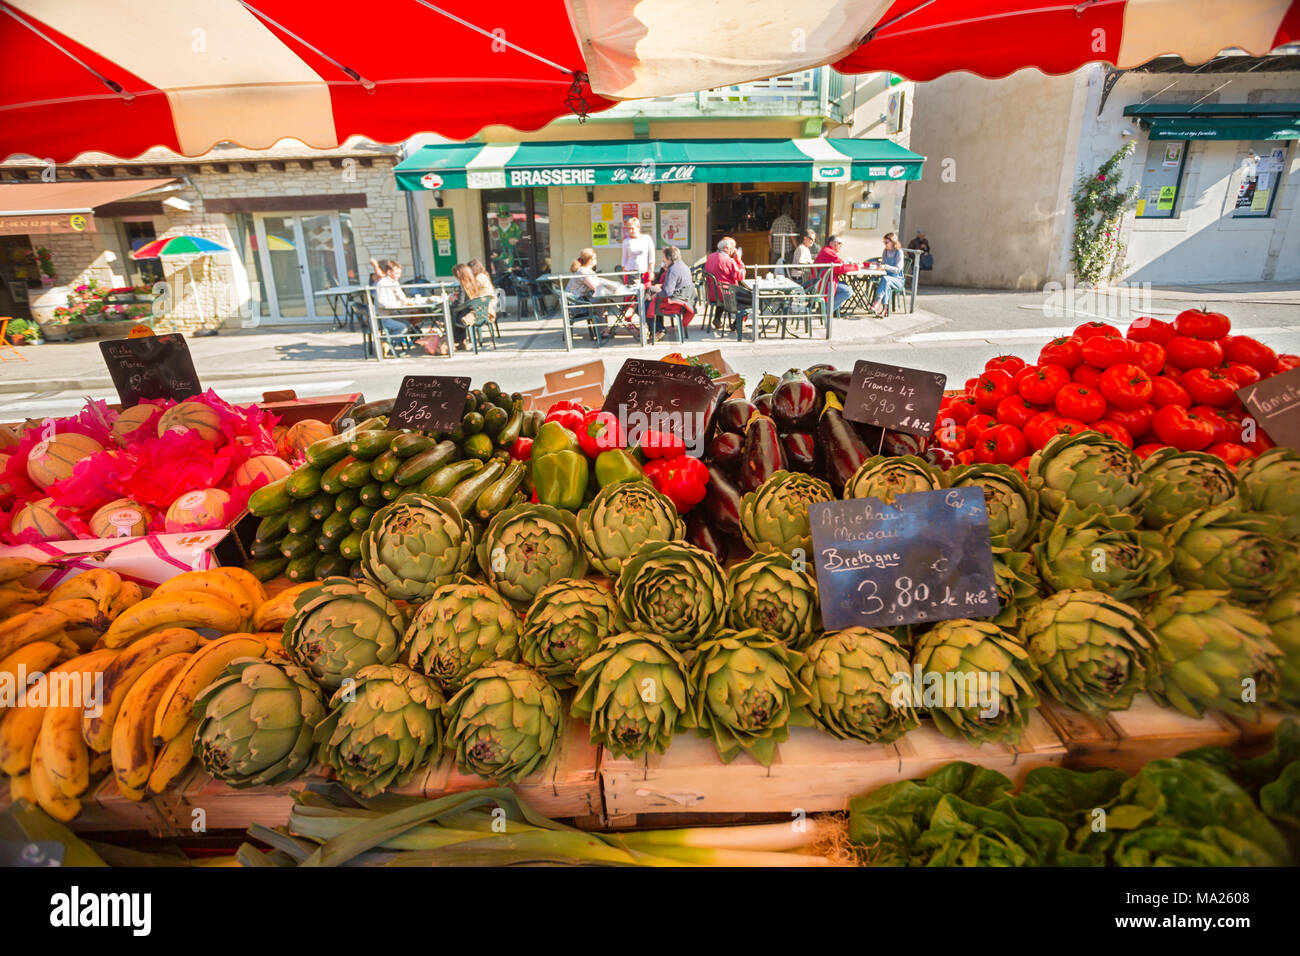 Early morning market in Luzech, a commune in the Lot department in south-western France. Stock Photo